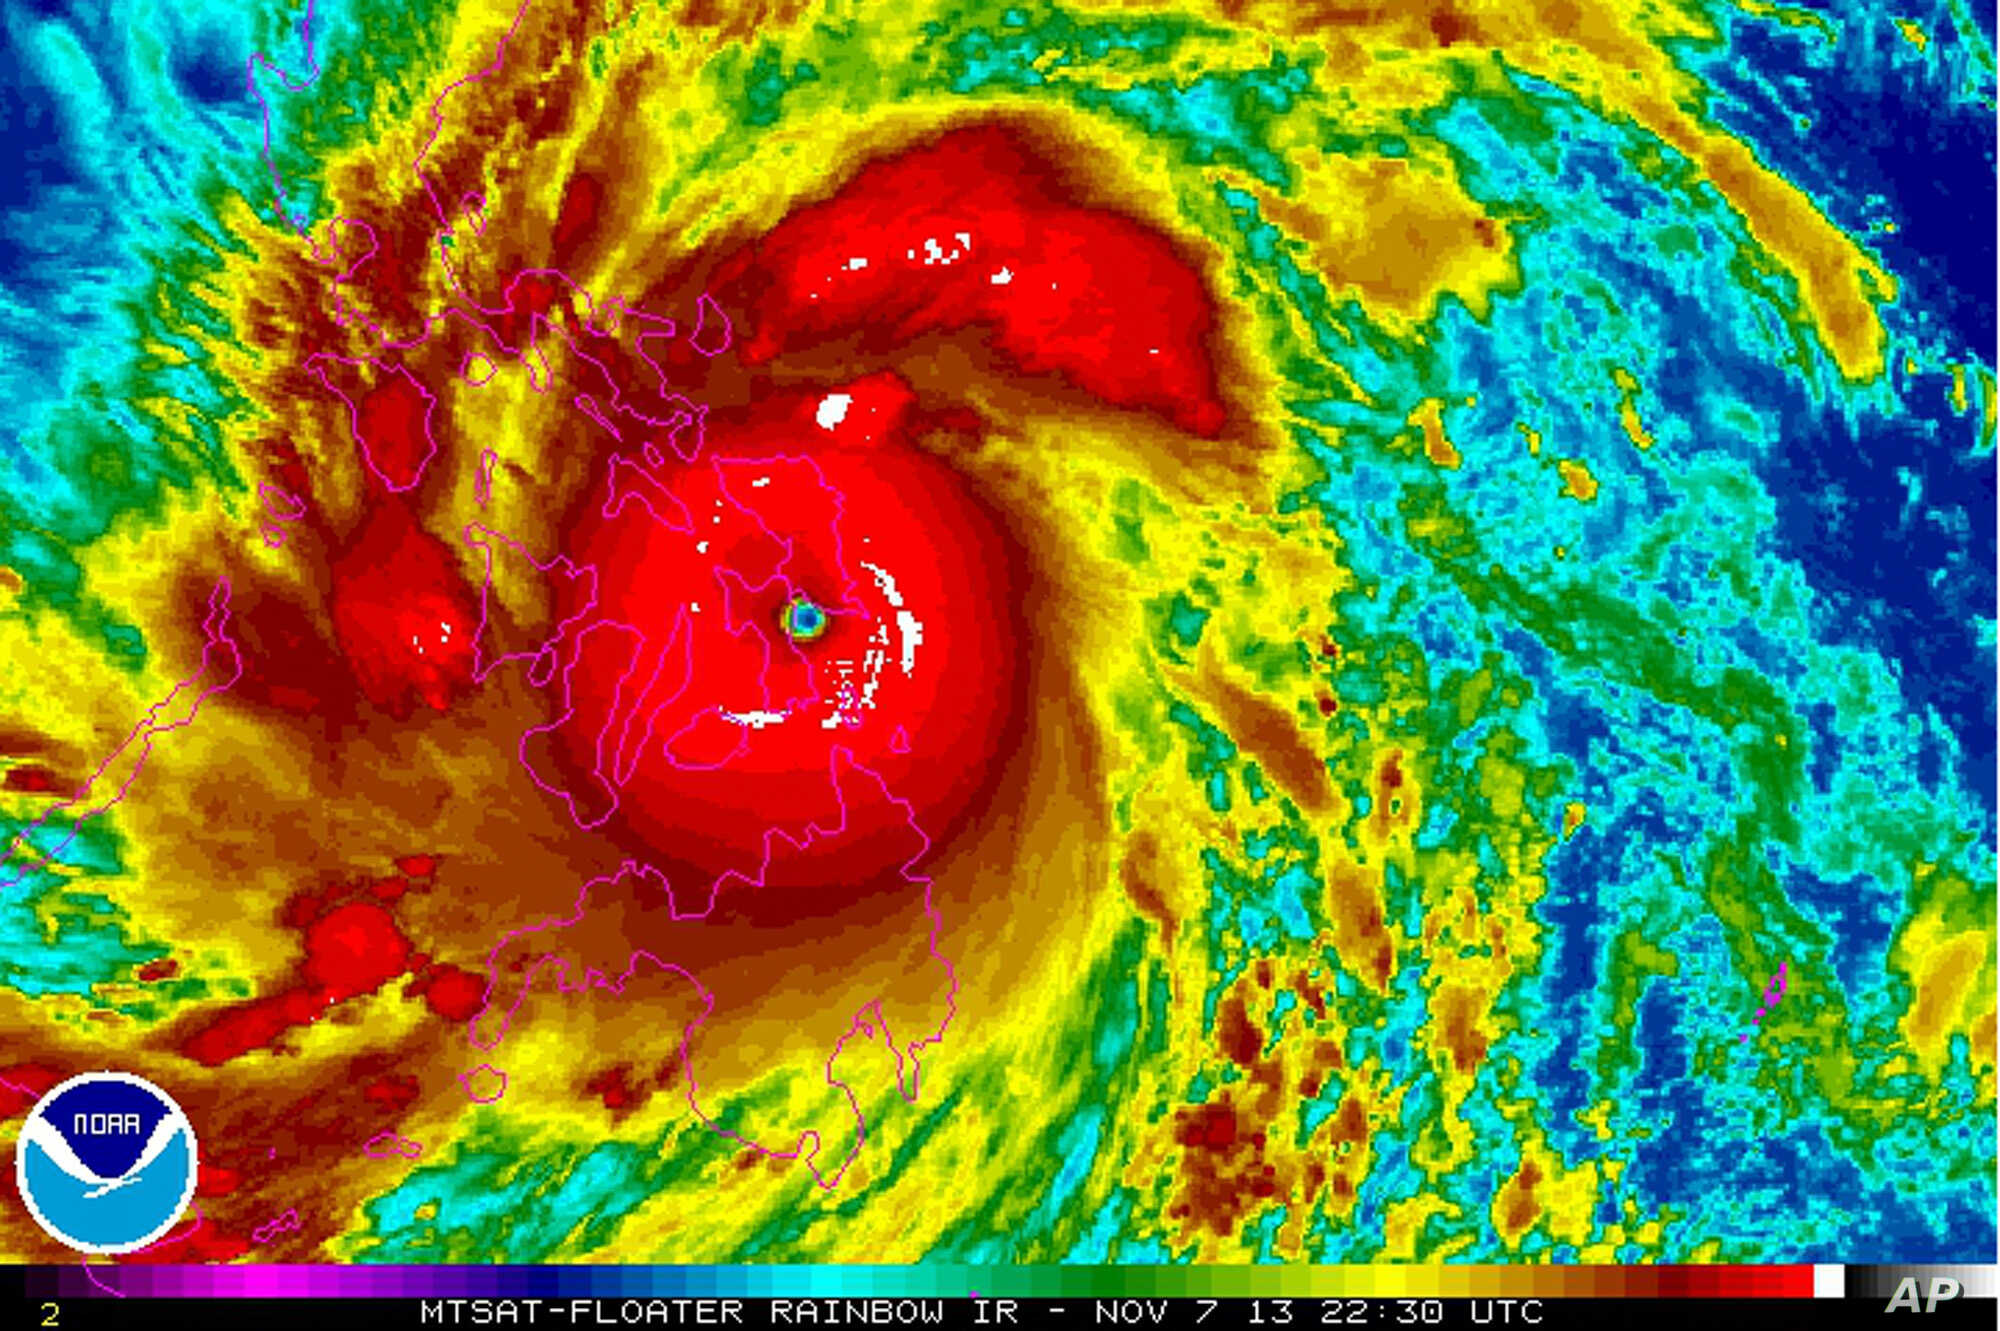 Satellite image provided by the National Oceanic and Atmospheric Administration shows Typhoon Haiyan over the Philippines, at 22:30 UTC , Nov. 7, 2013